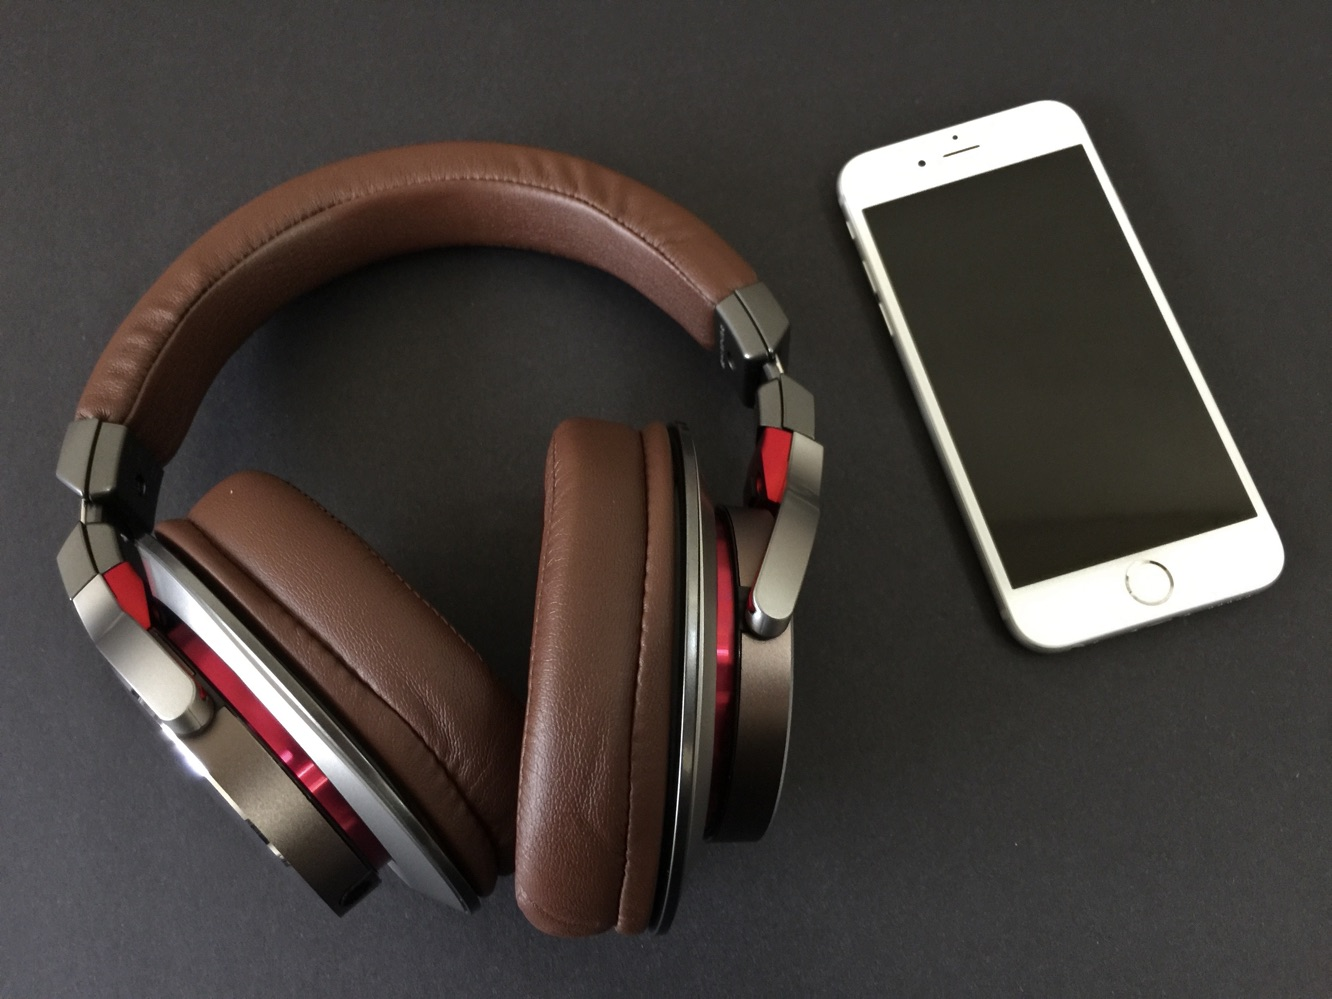 Review: Audio-Technica ATH-MSR7 SonicPro Over-Ear Headphones 6